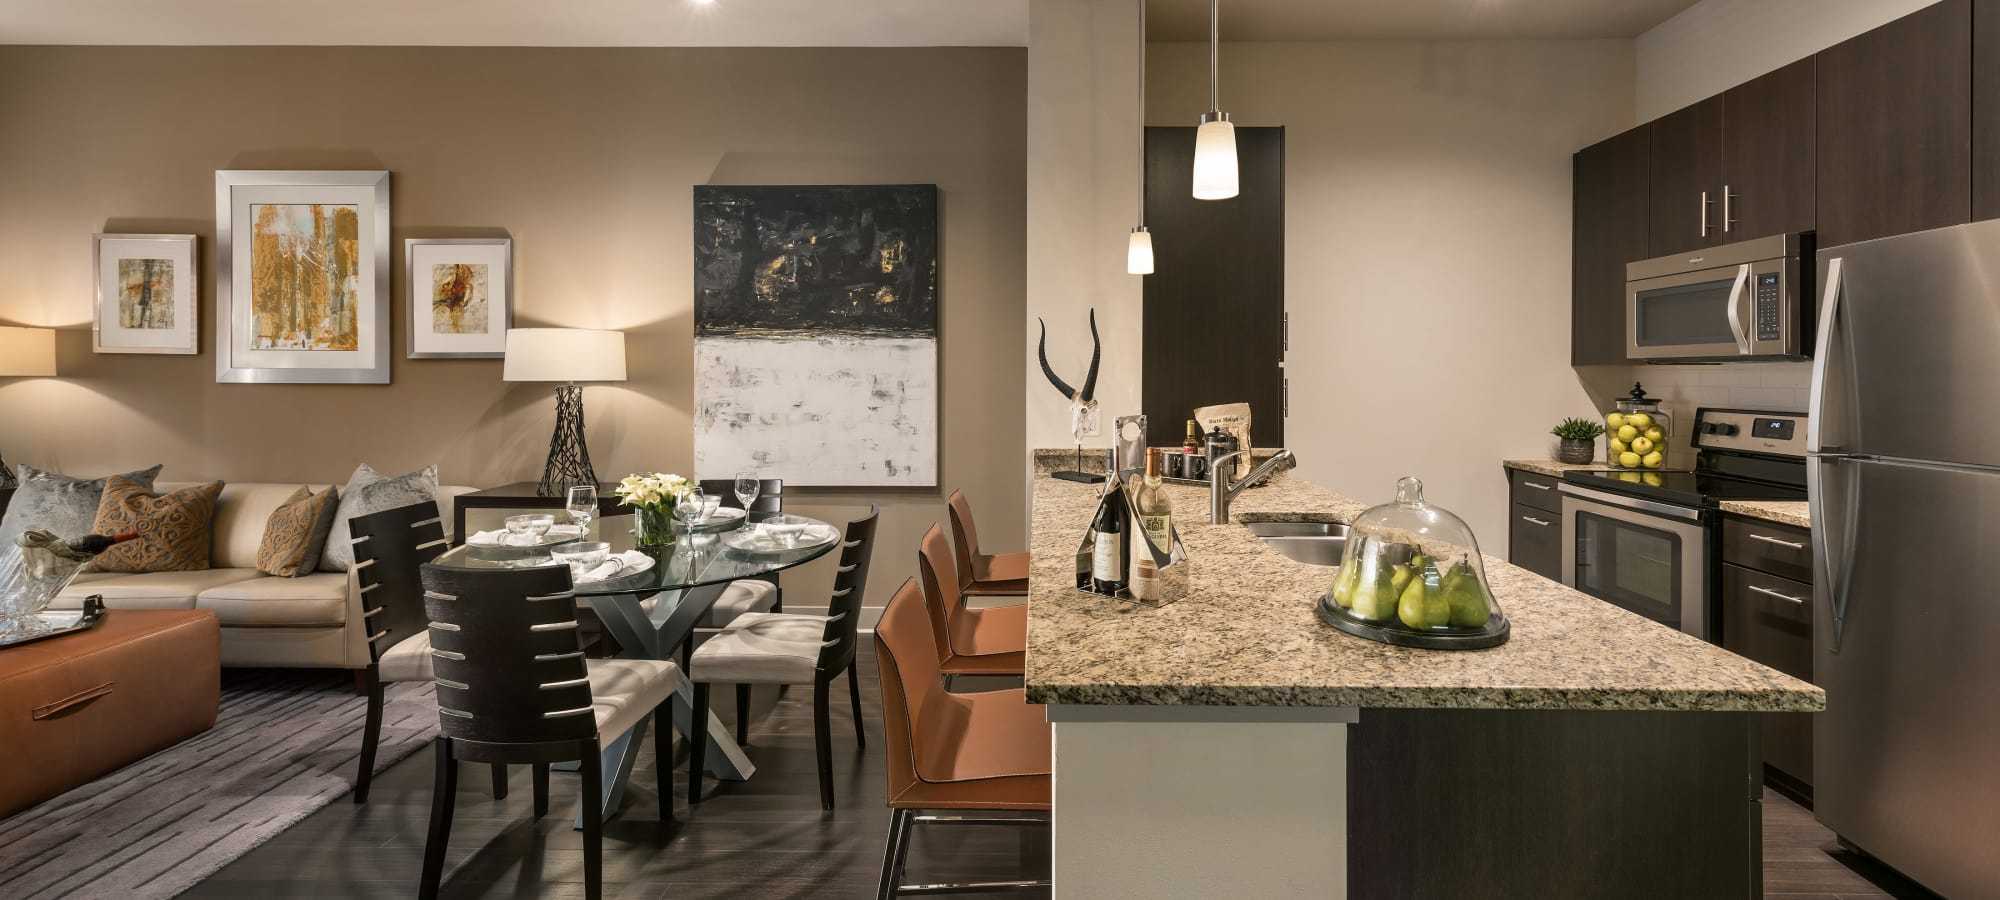 Open kitchen with breakfast bar at Emerson Mill Avenue in Tempe, Arizona